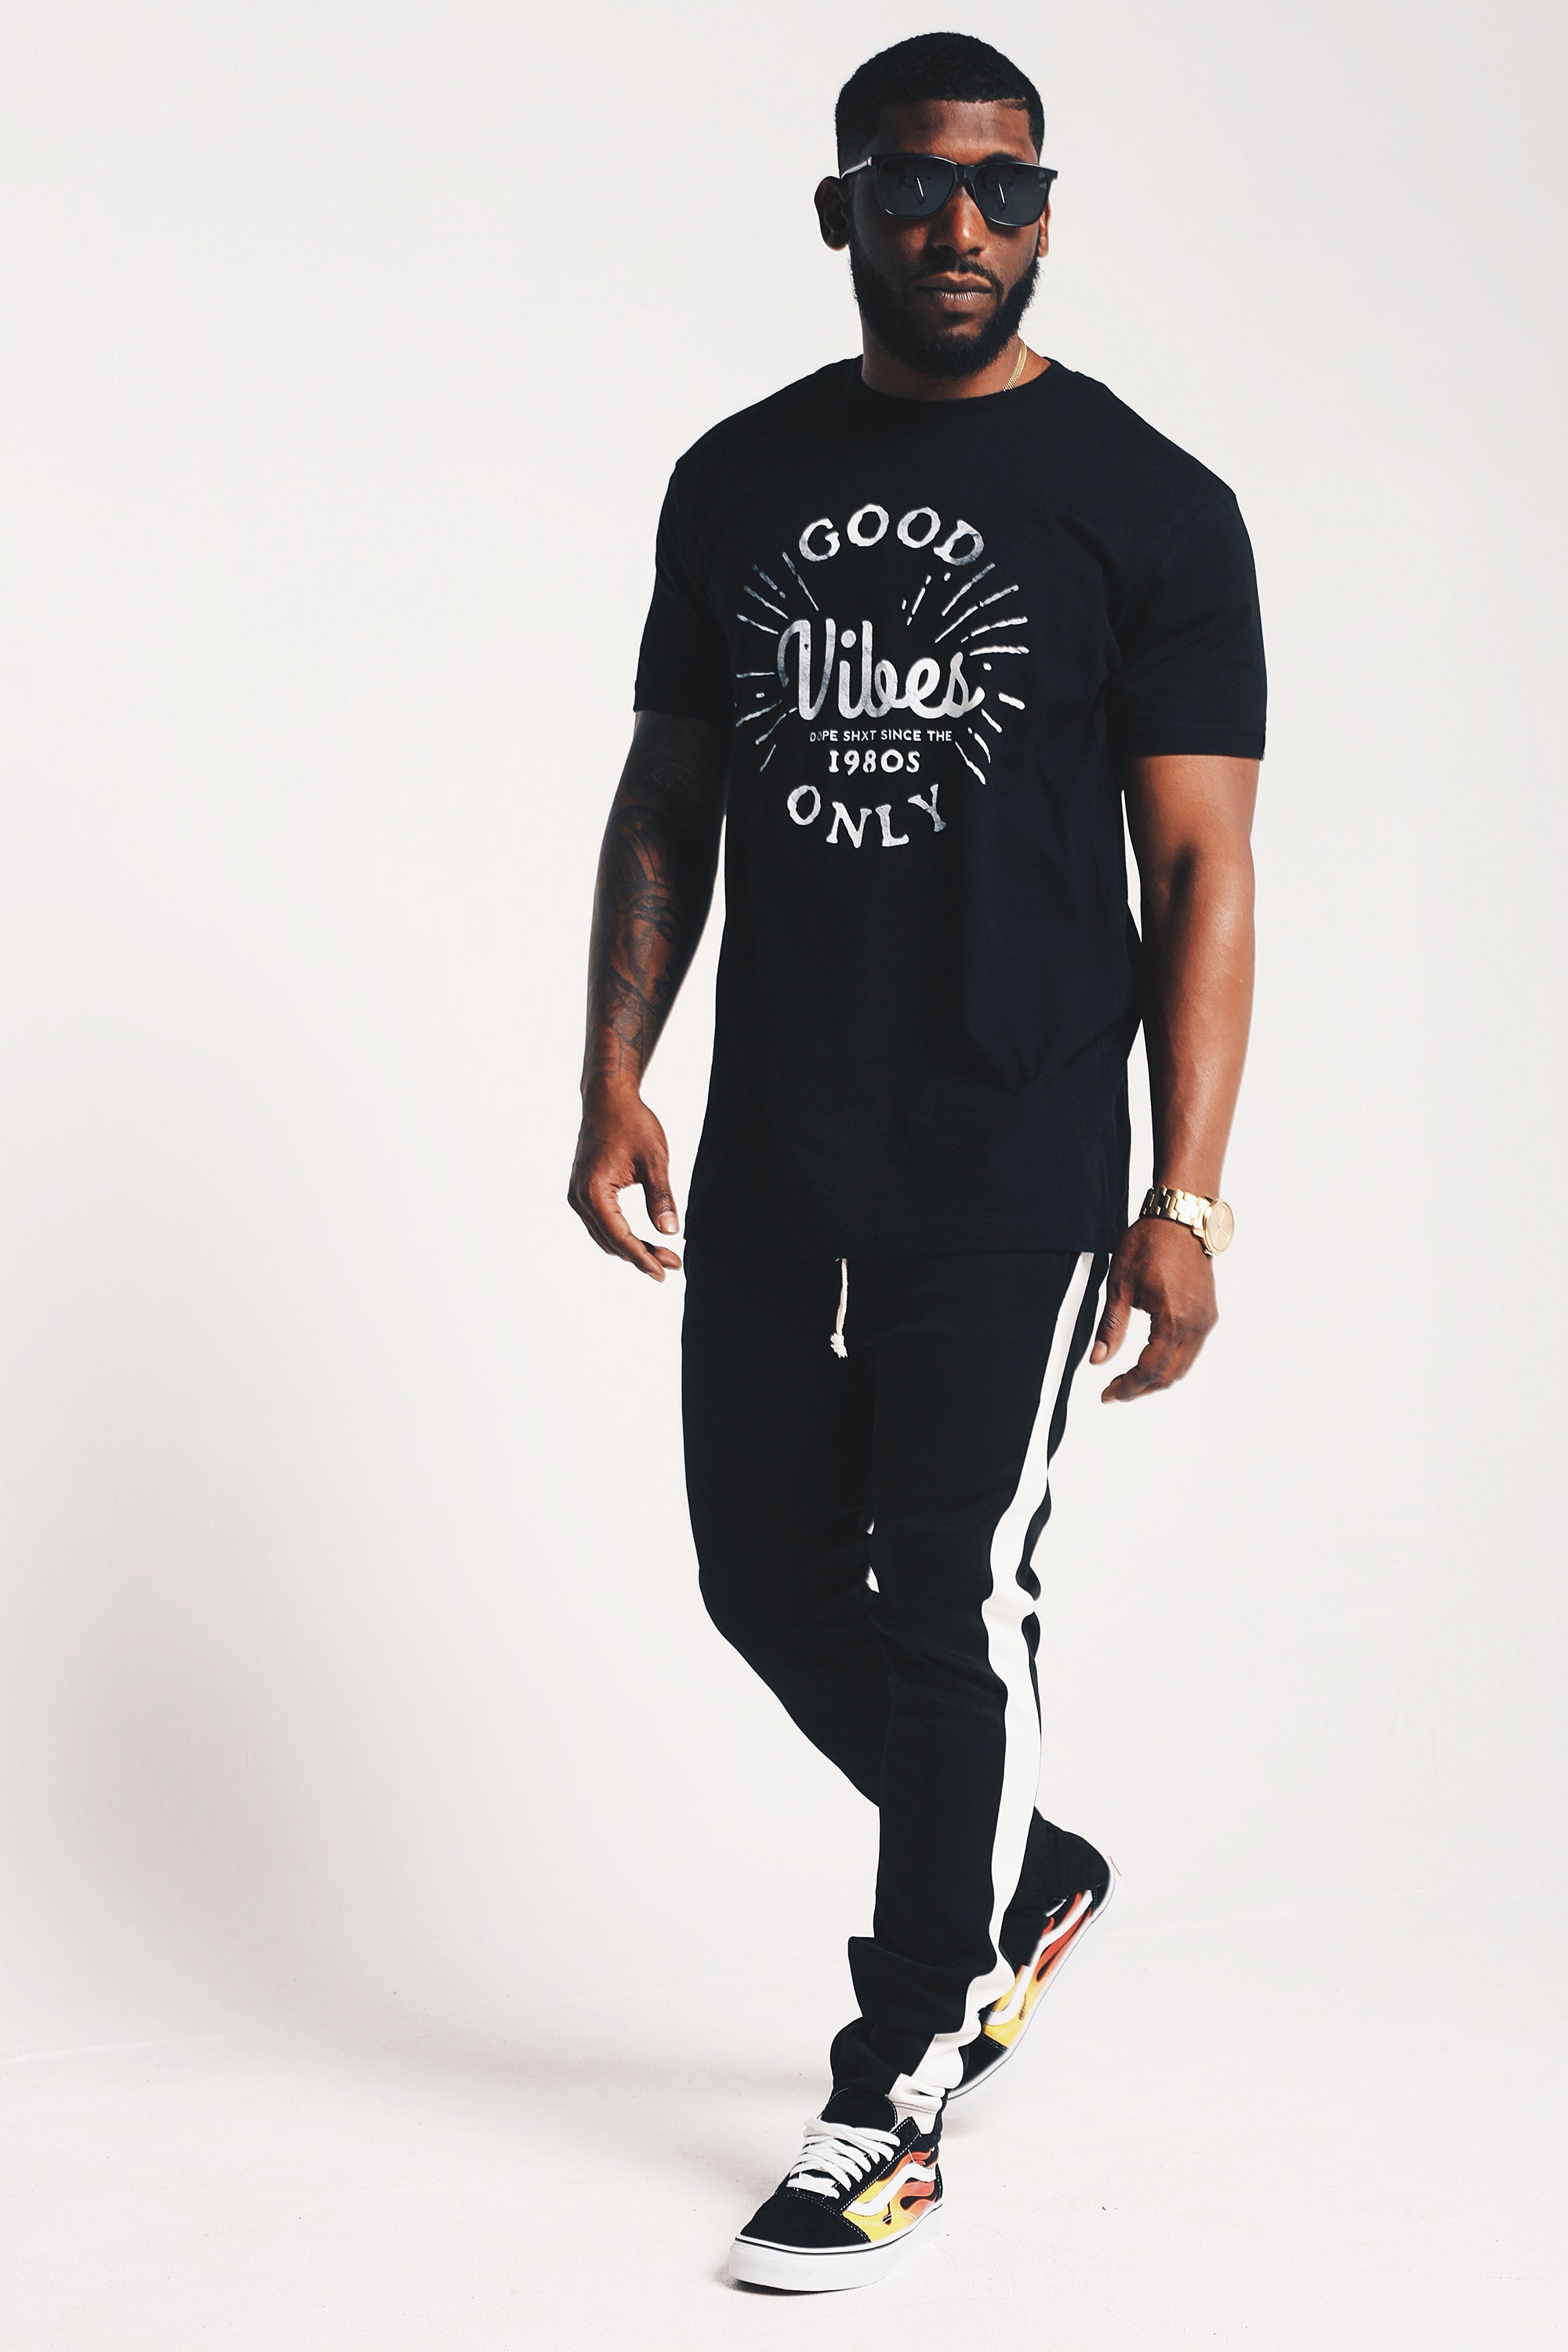 Good Vibes Only (BLK)